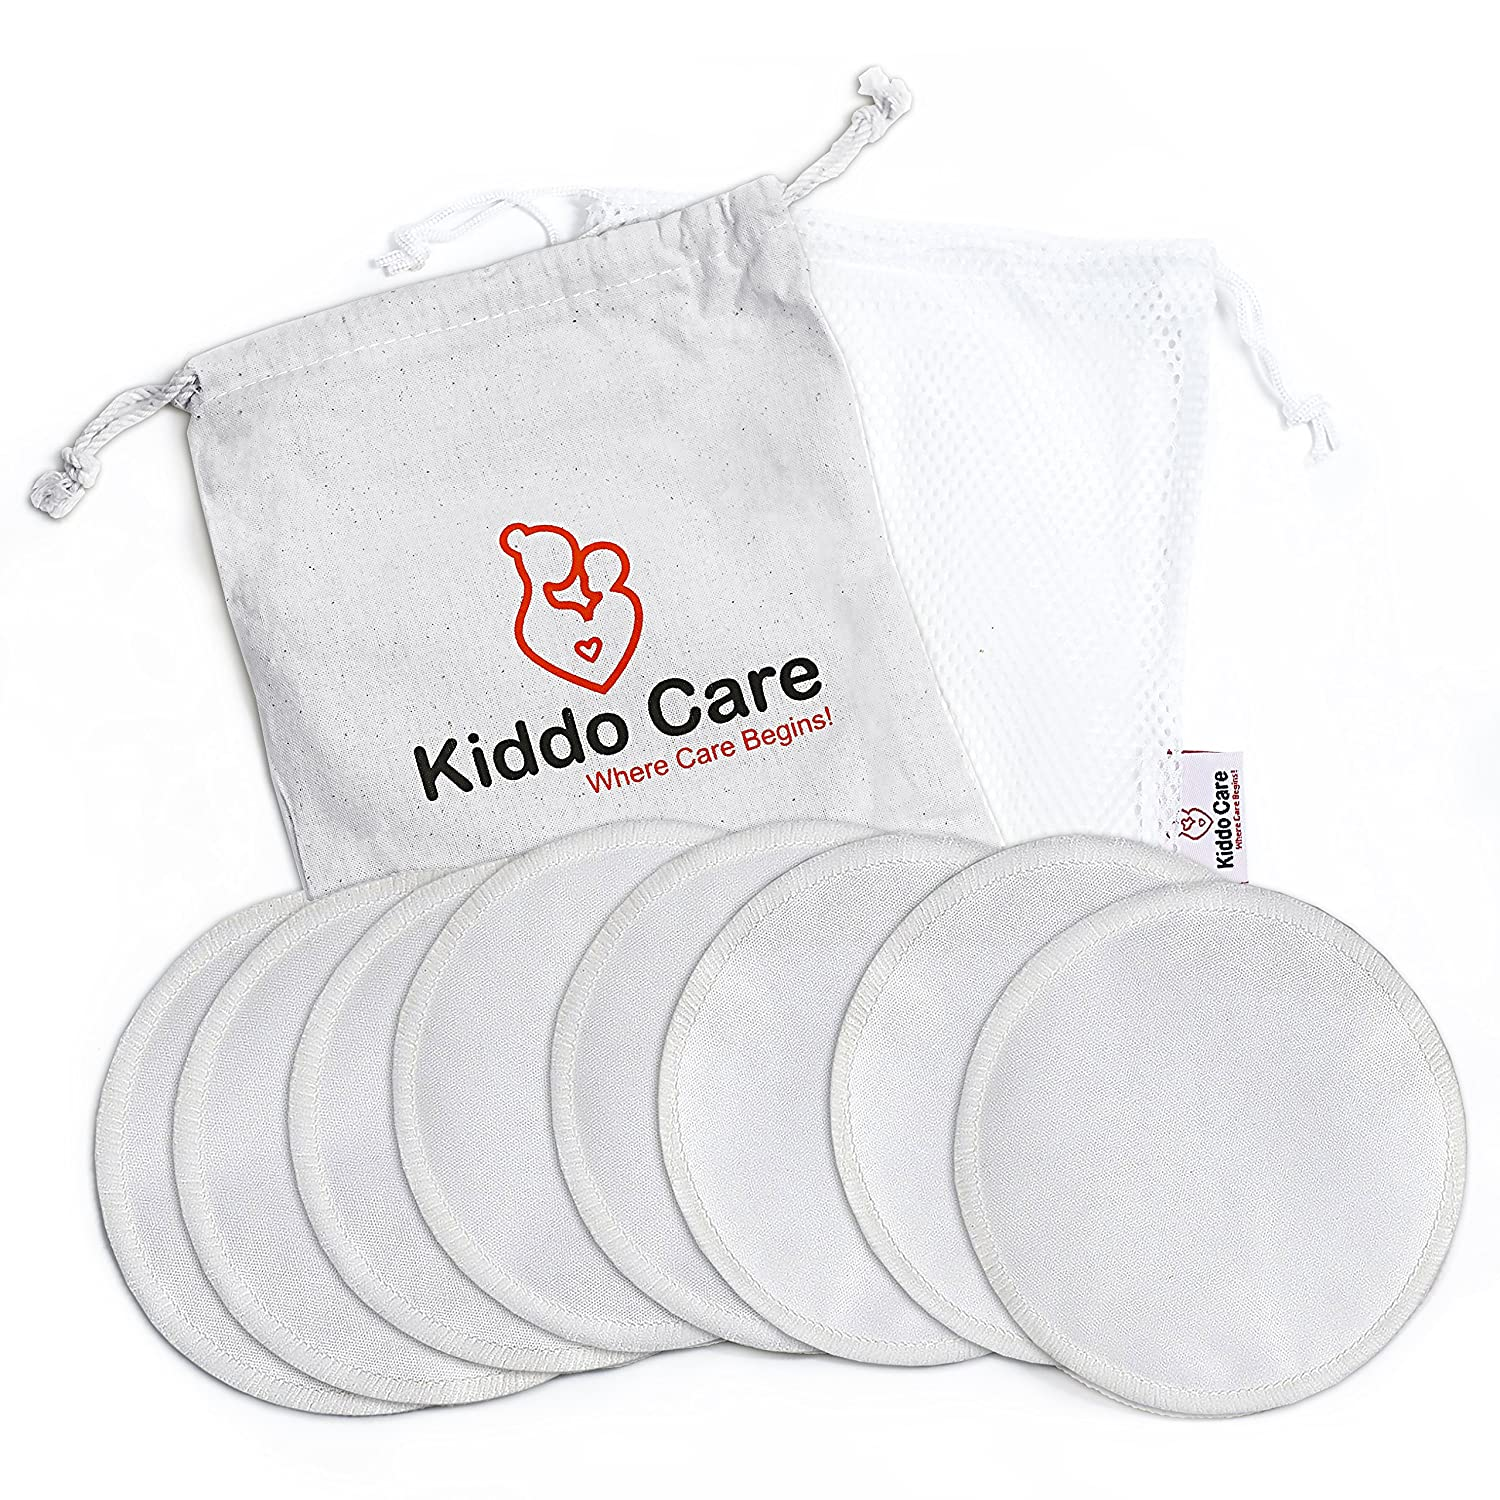 Kiddo Care Washable Organic Bamboo Nursing Pads -8 PACK (4 pairs) White- Reusable Breast Pads,Bra pads, Leakproof, Ultra soft, Waterproof, Hypoallergenic breastfeeding pads, absorbent pads, + 2 FREE Ebooks !!